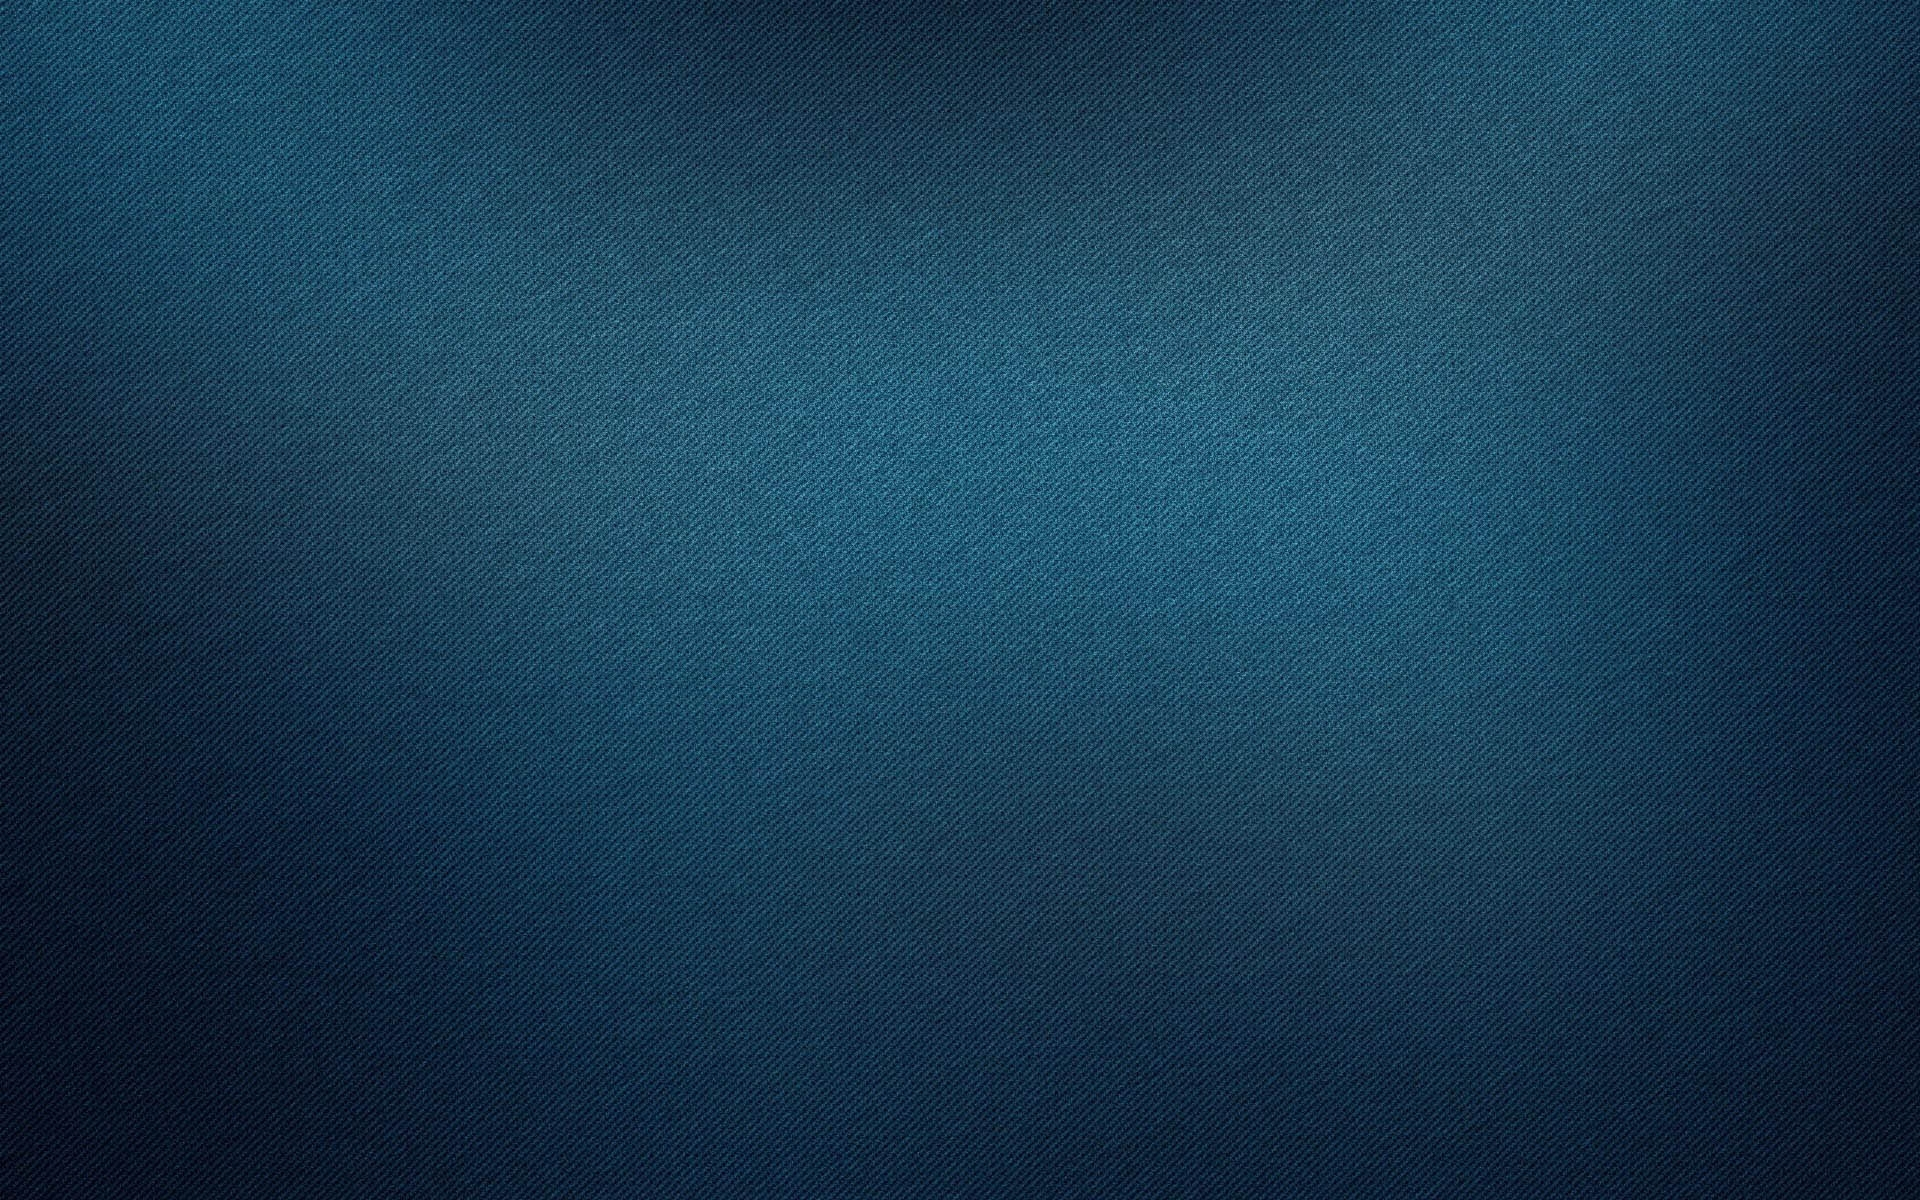 Navy Blue Background Gradient Navy Blue Background